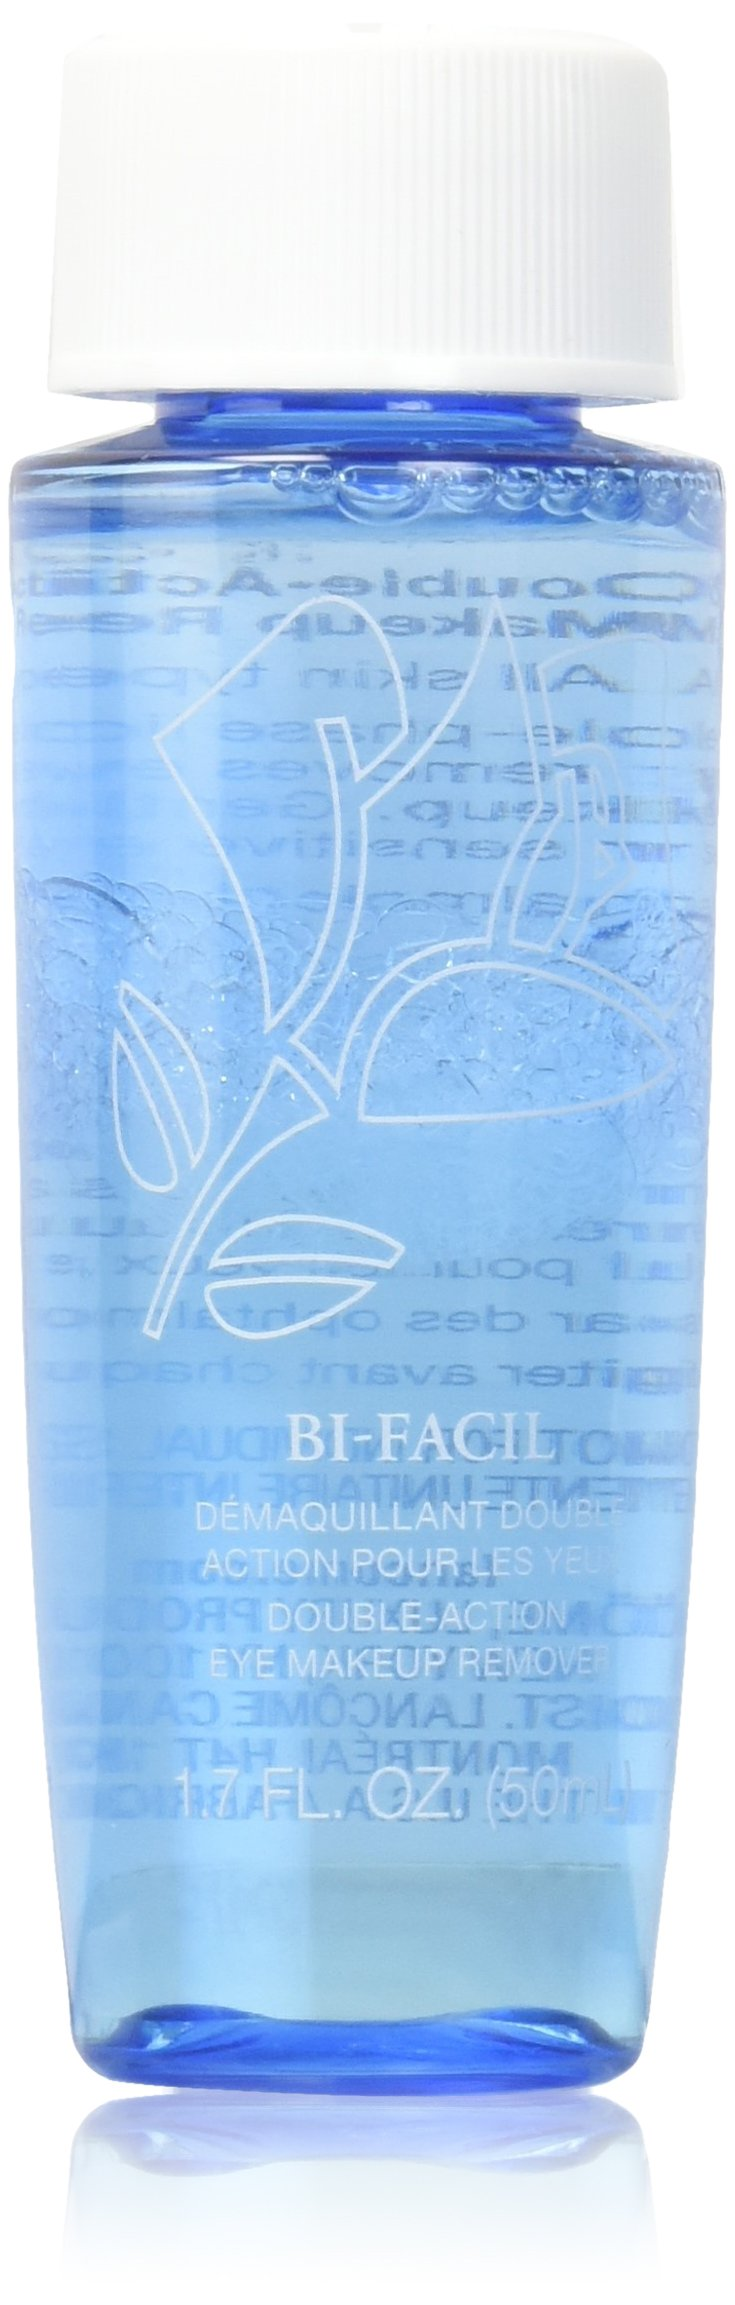 Bi-Facil Double Action Eye Makeup Remover 1.7 FL. OZ. Each (Lot of 4) by lancome (Image #1)